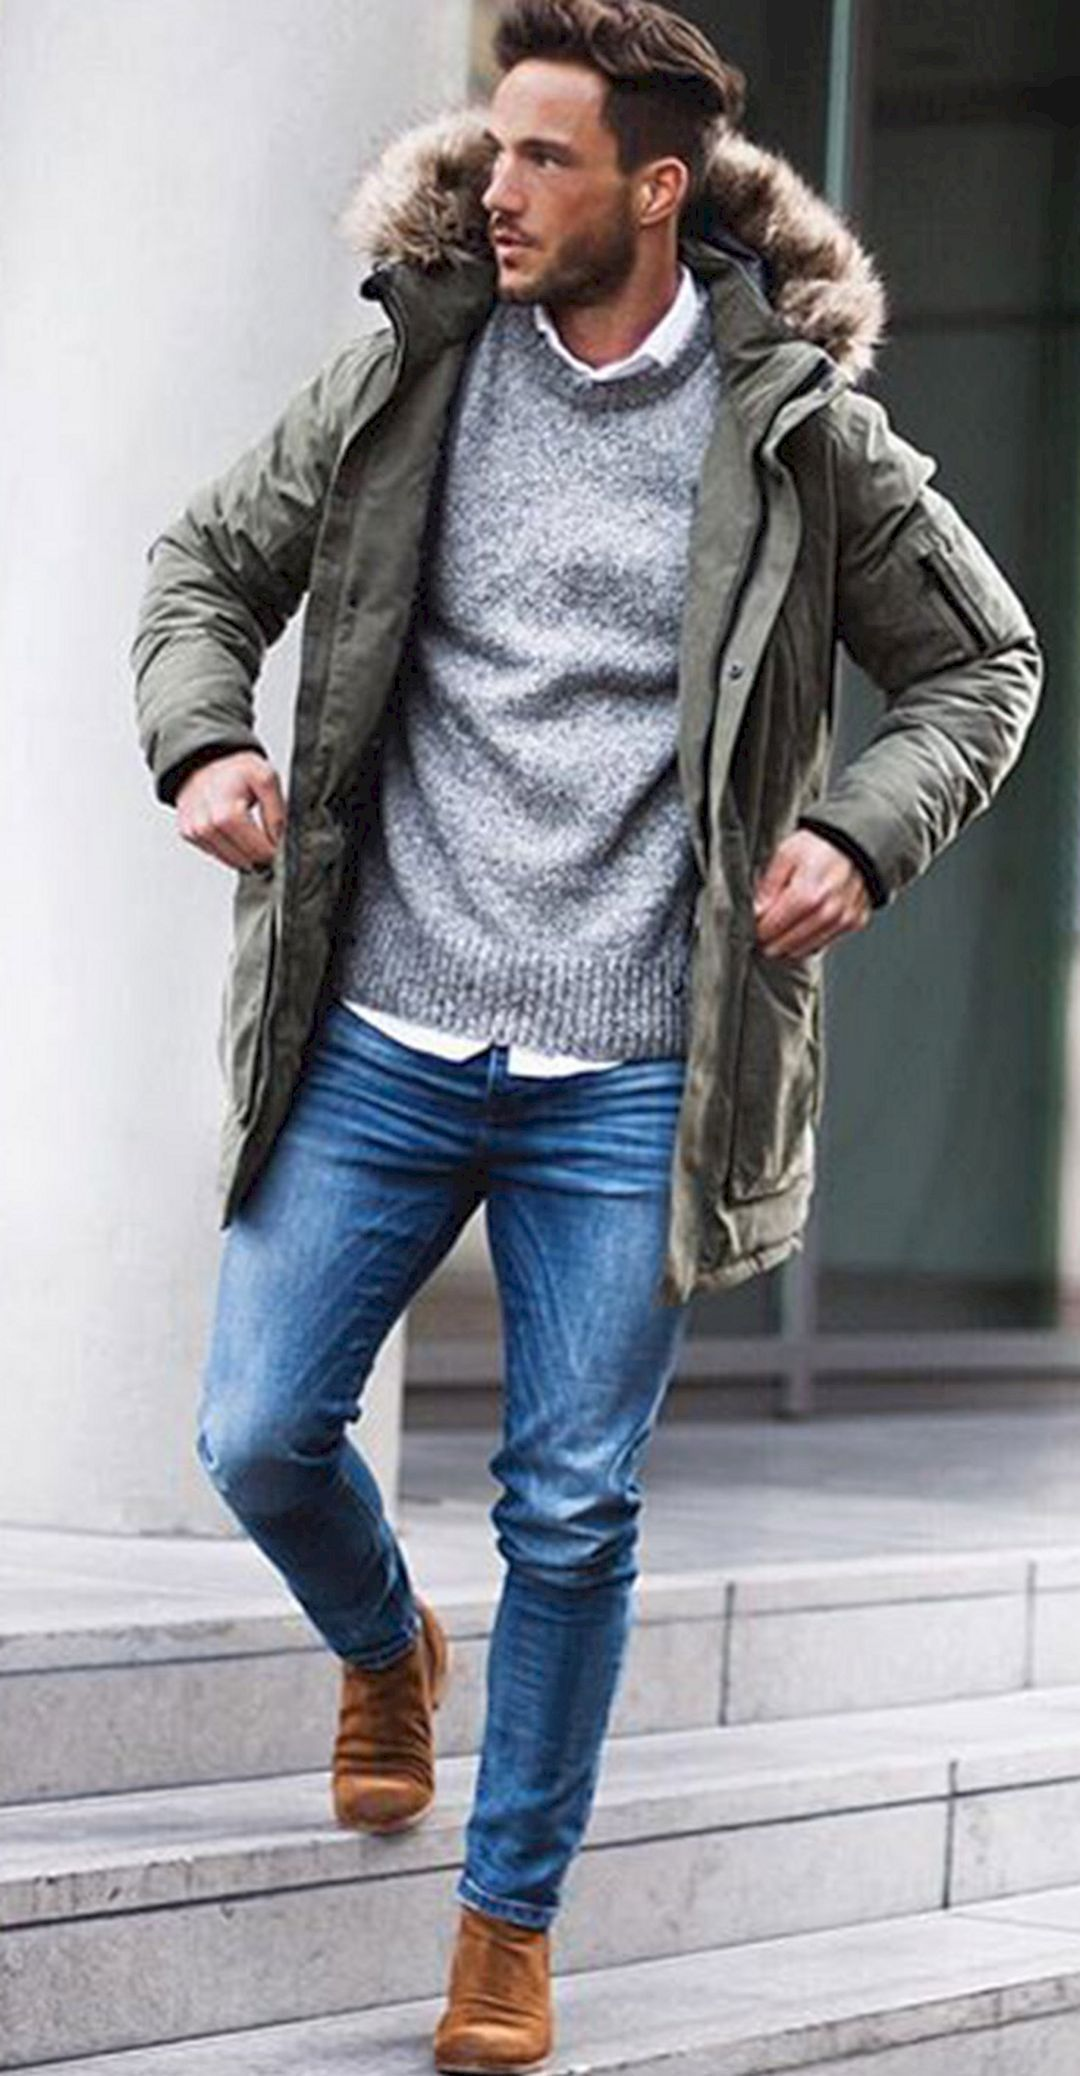 Men Winter Casual Outfit Ideas 8 | Men's Fashion | Winter ...